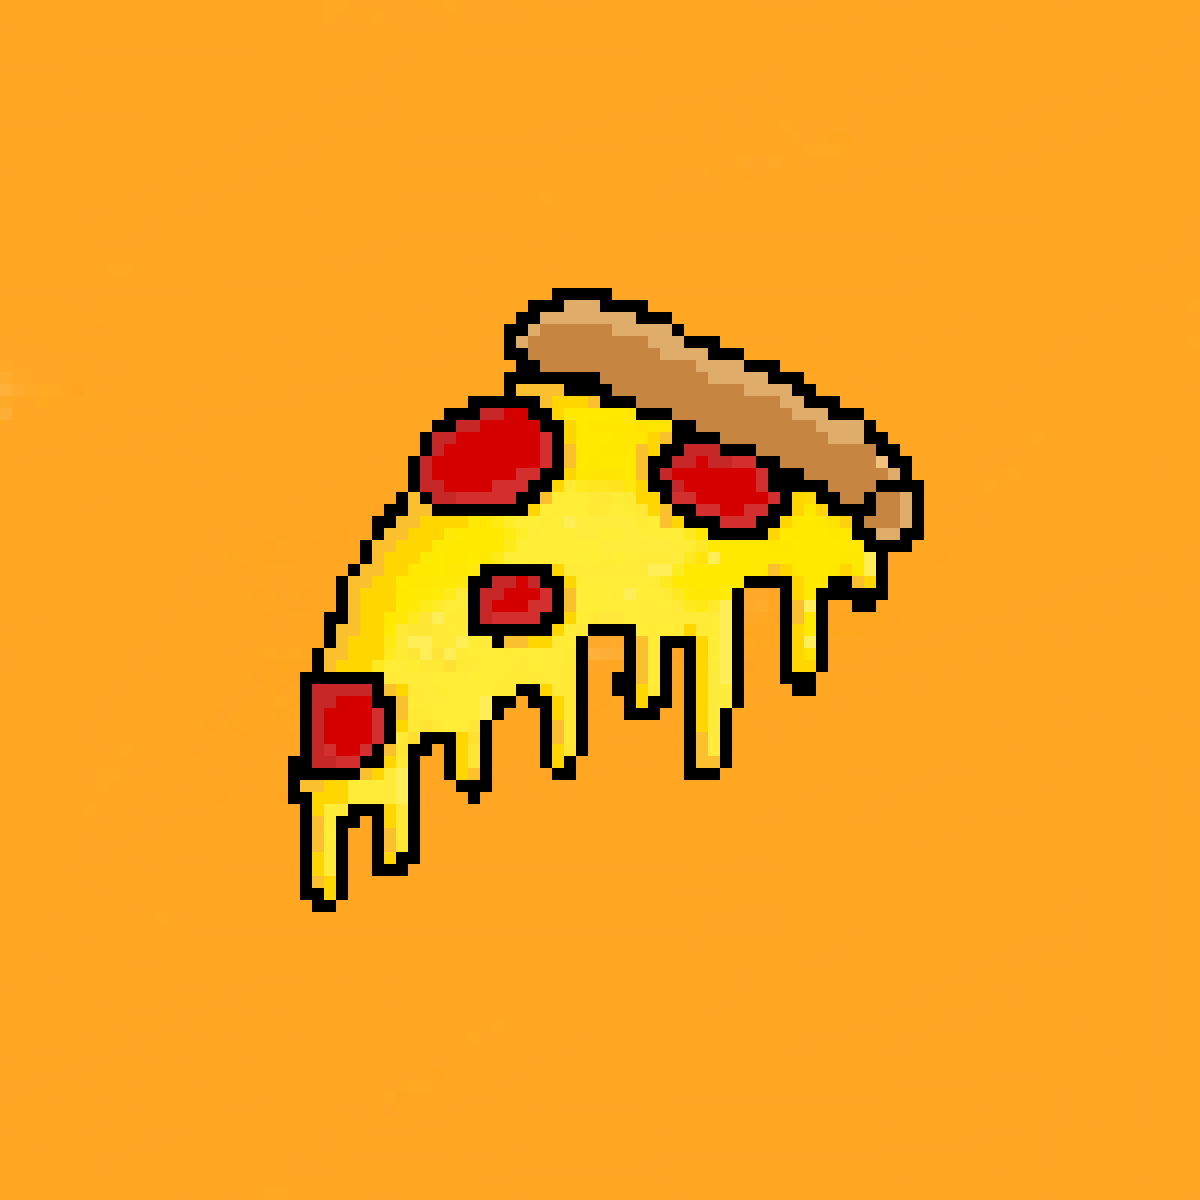 A slice of cheesy pizza by snappyjaw